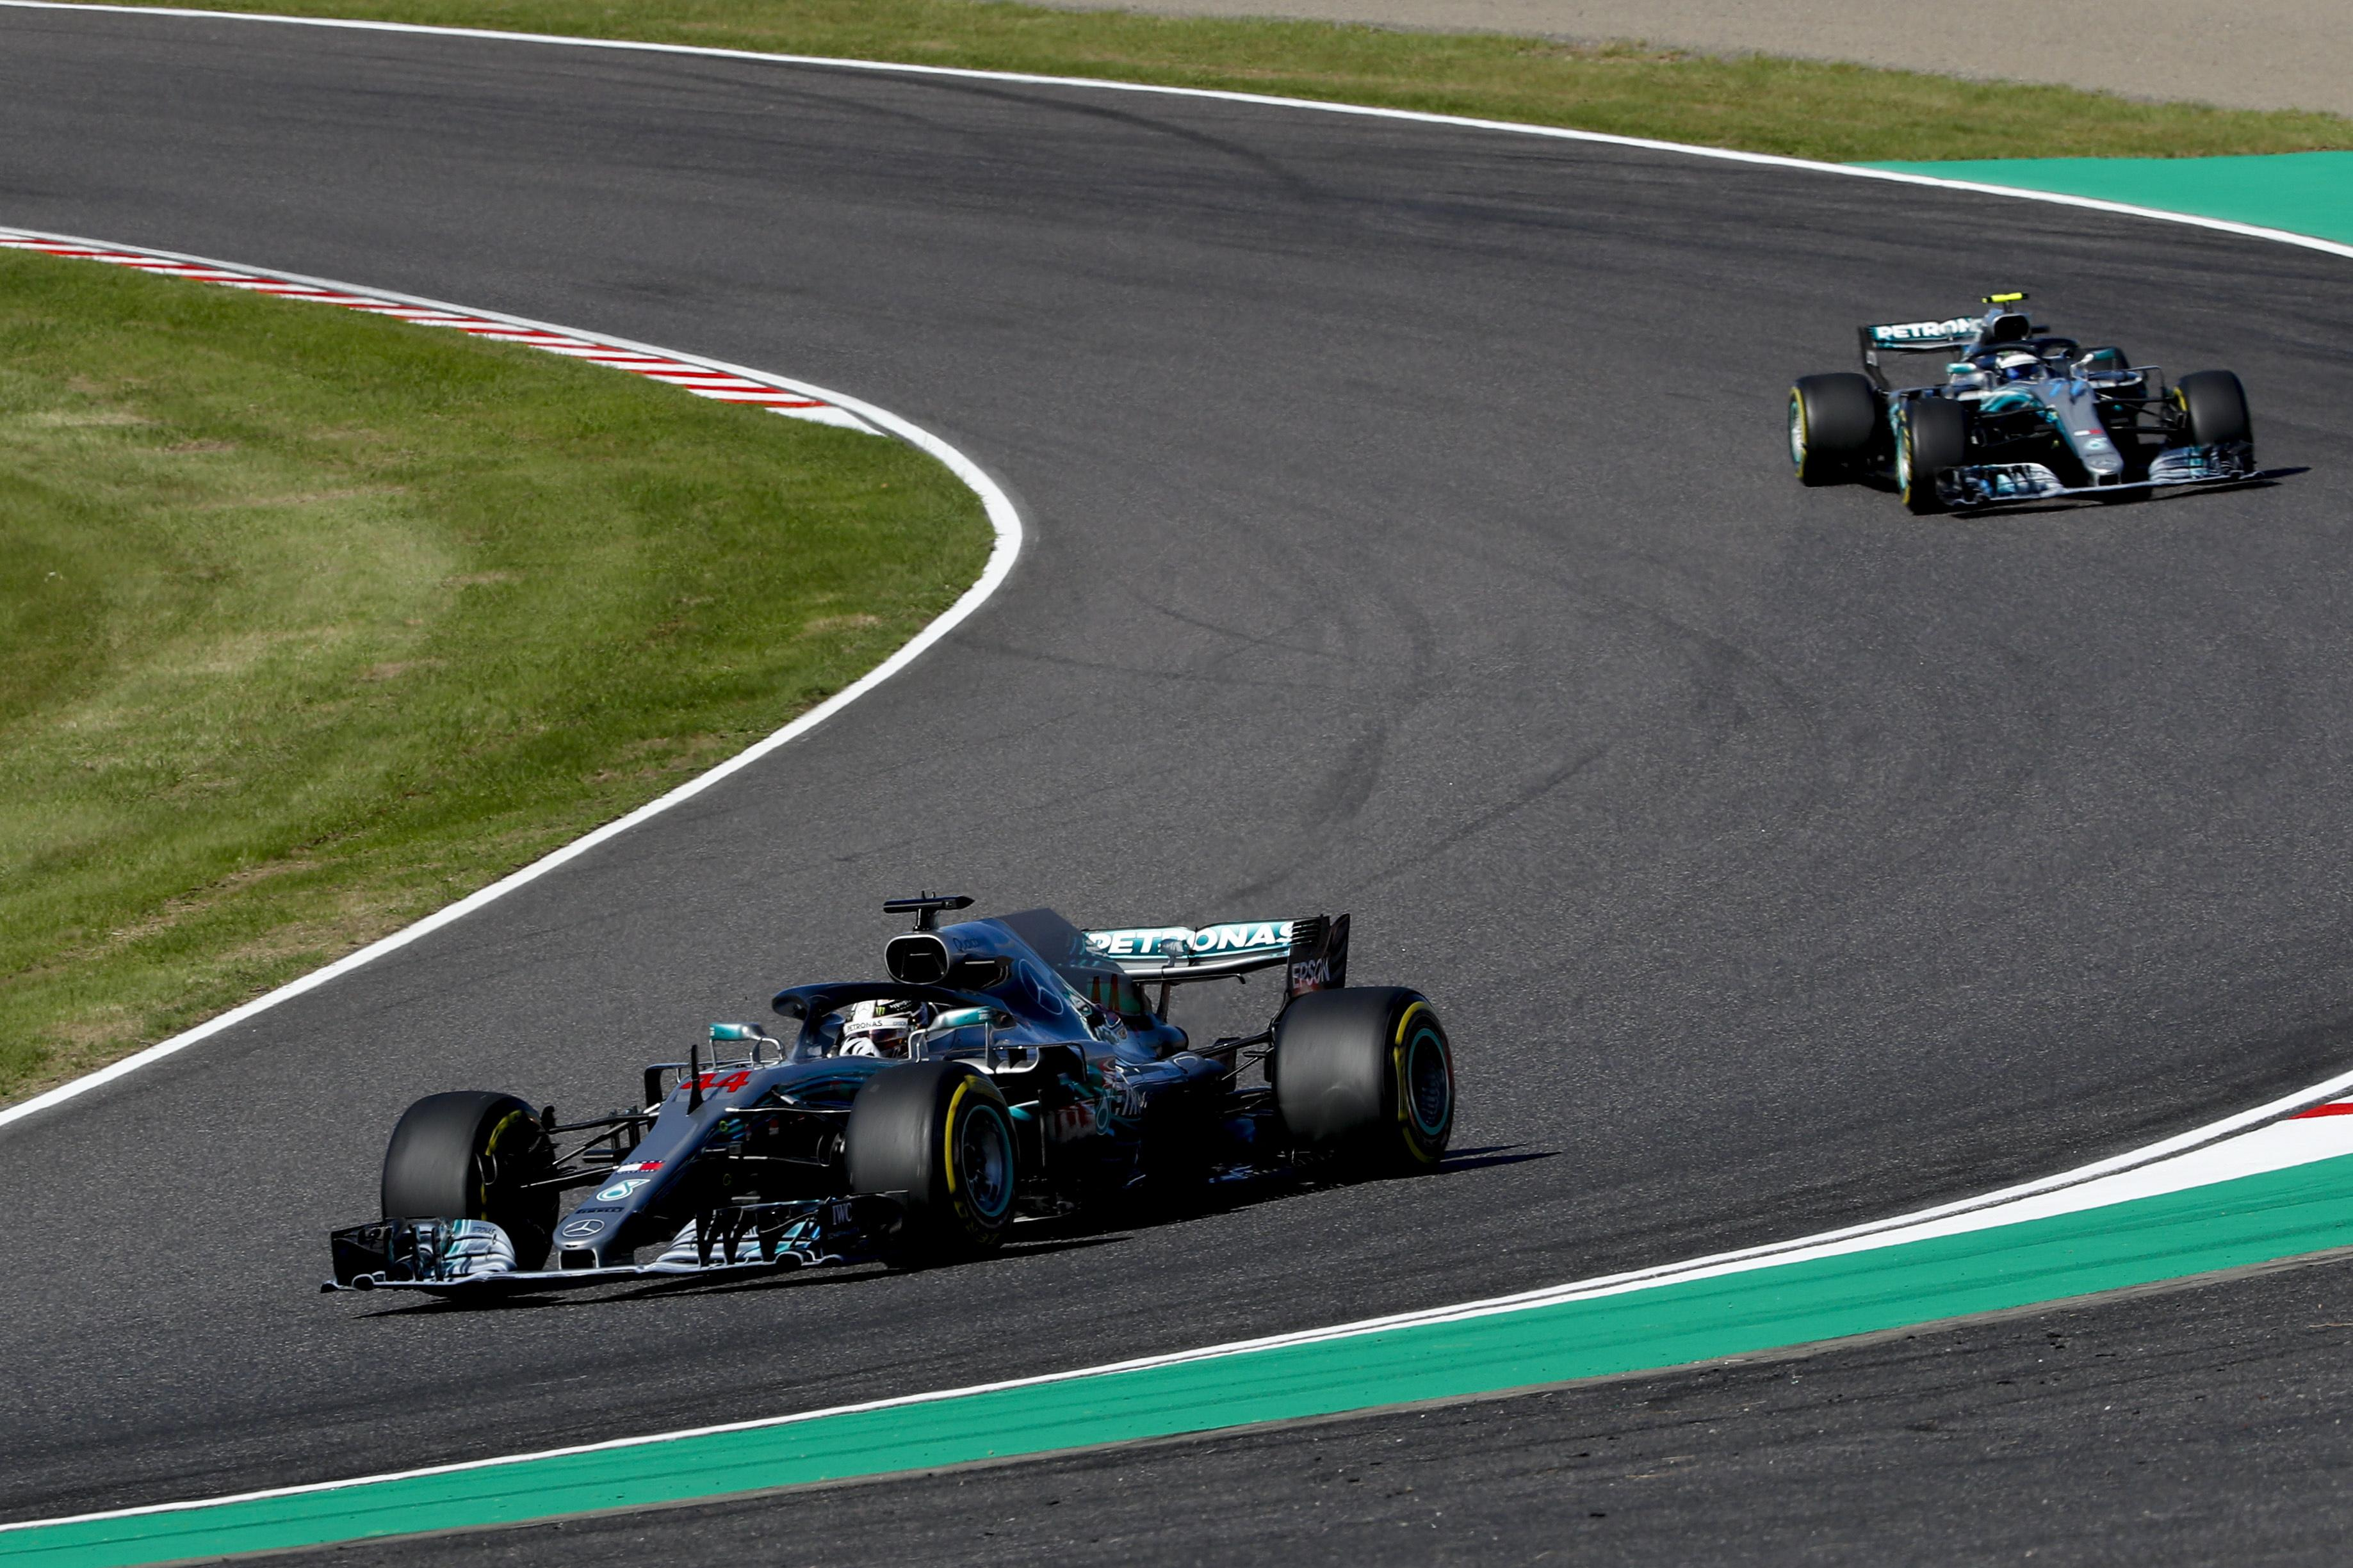 It was a Mercedes one-two once again as Valtteri Bottas finished second